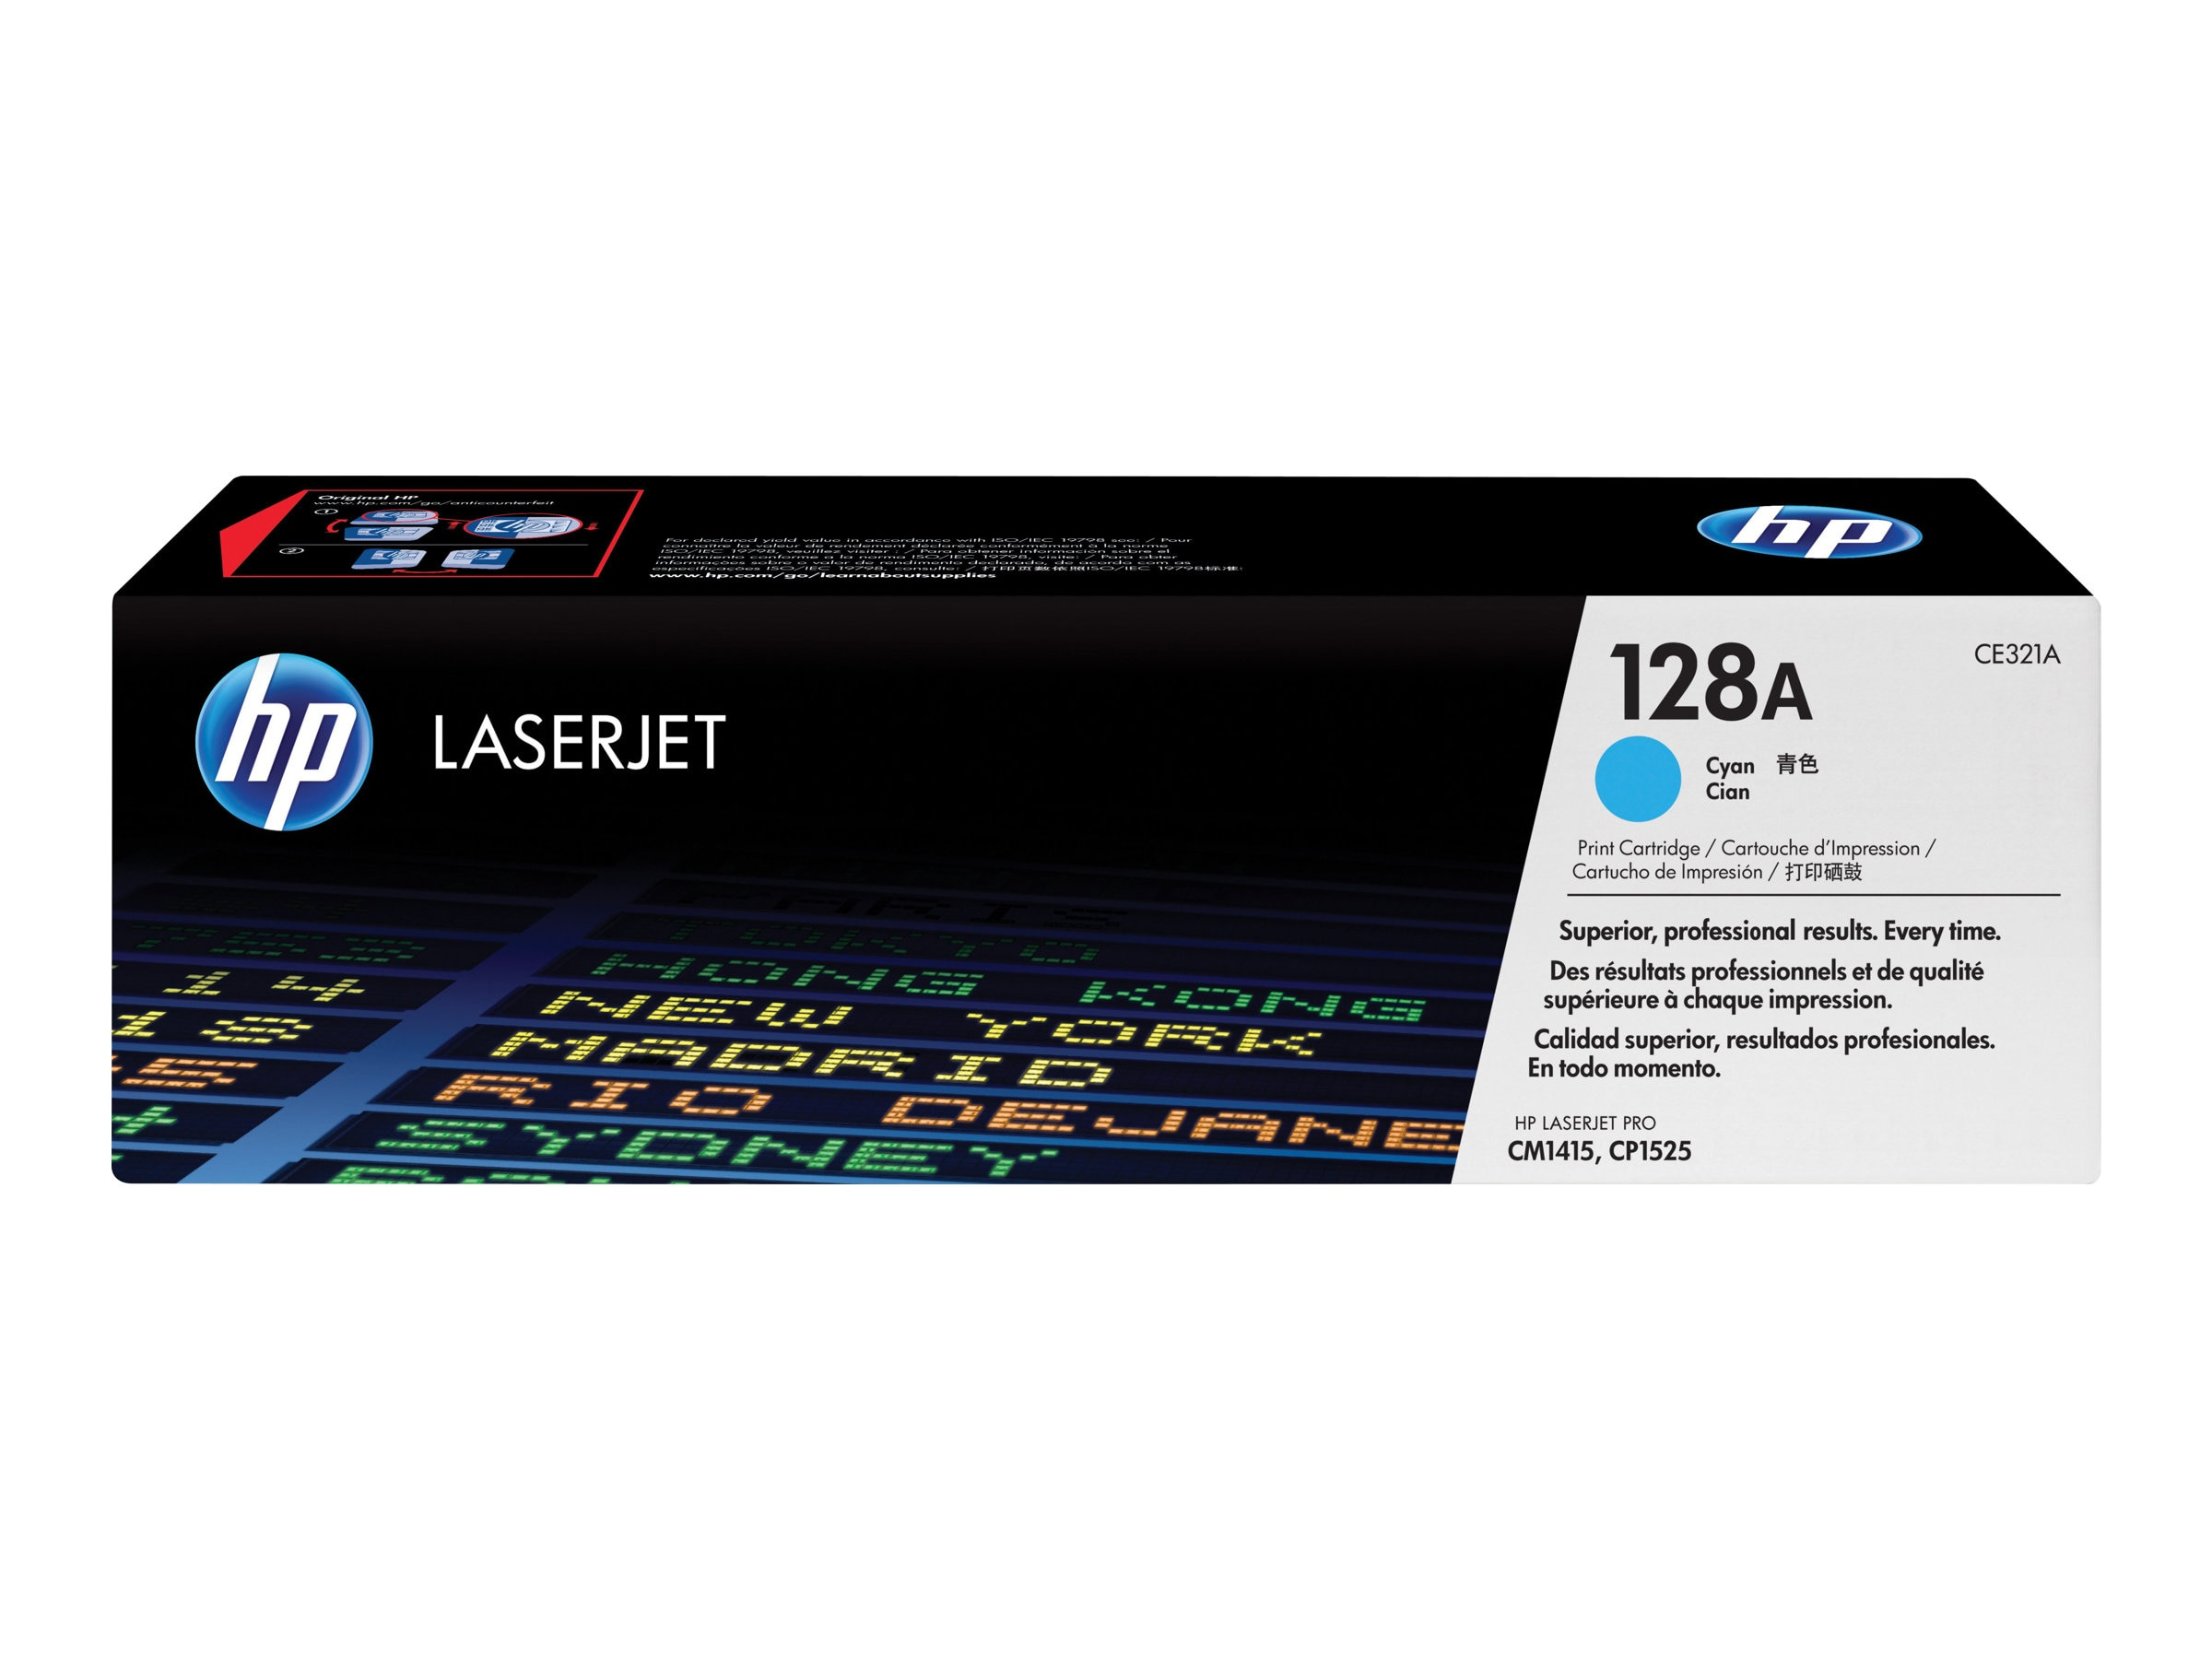 HP 128A (CE321A) Cyan Original LaserJet Toner Cartridge for HP LaserJet Pro CM1415fnw & CP1525nw, CE321A, 11845463, Toner and Imaging Components